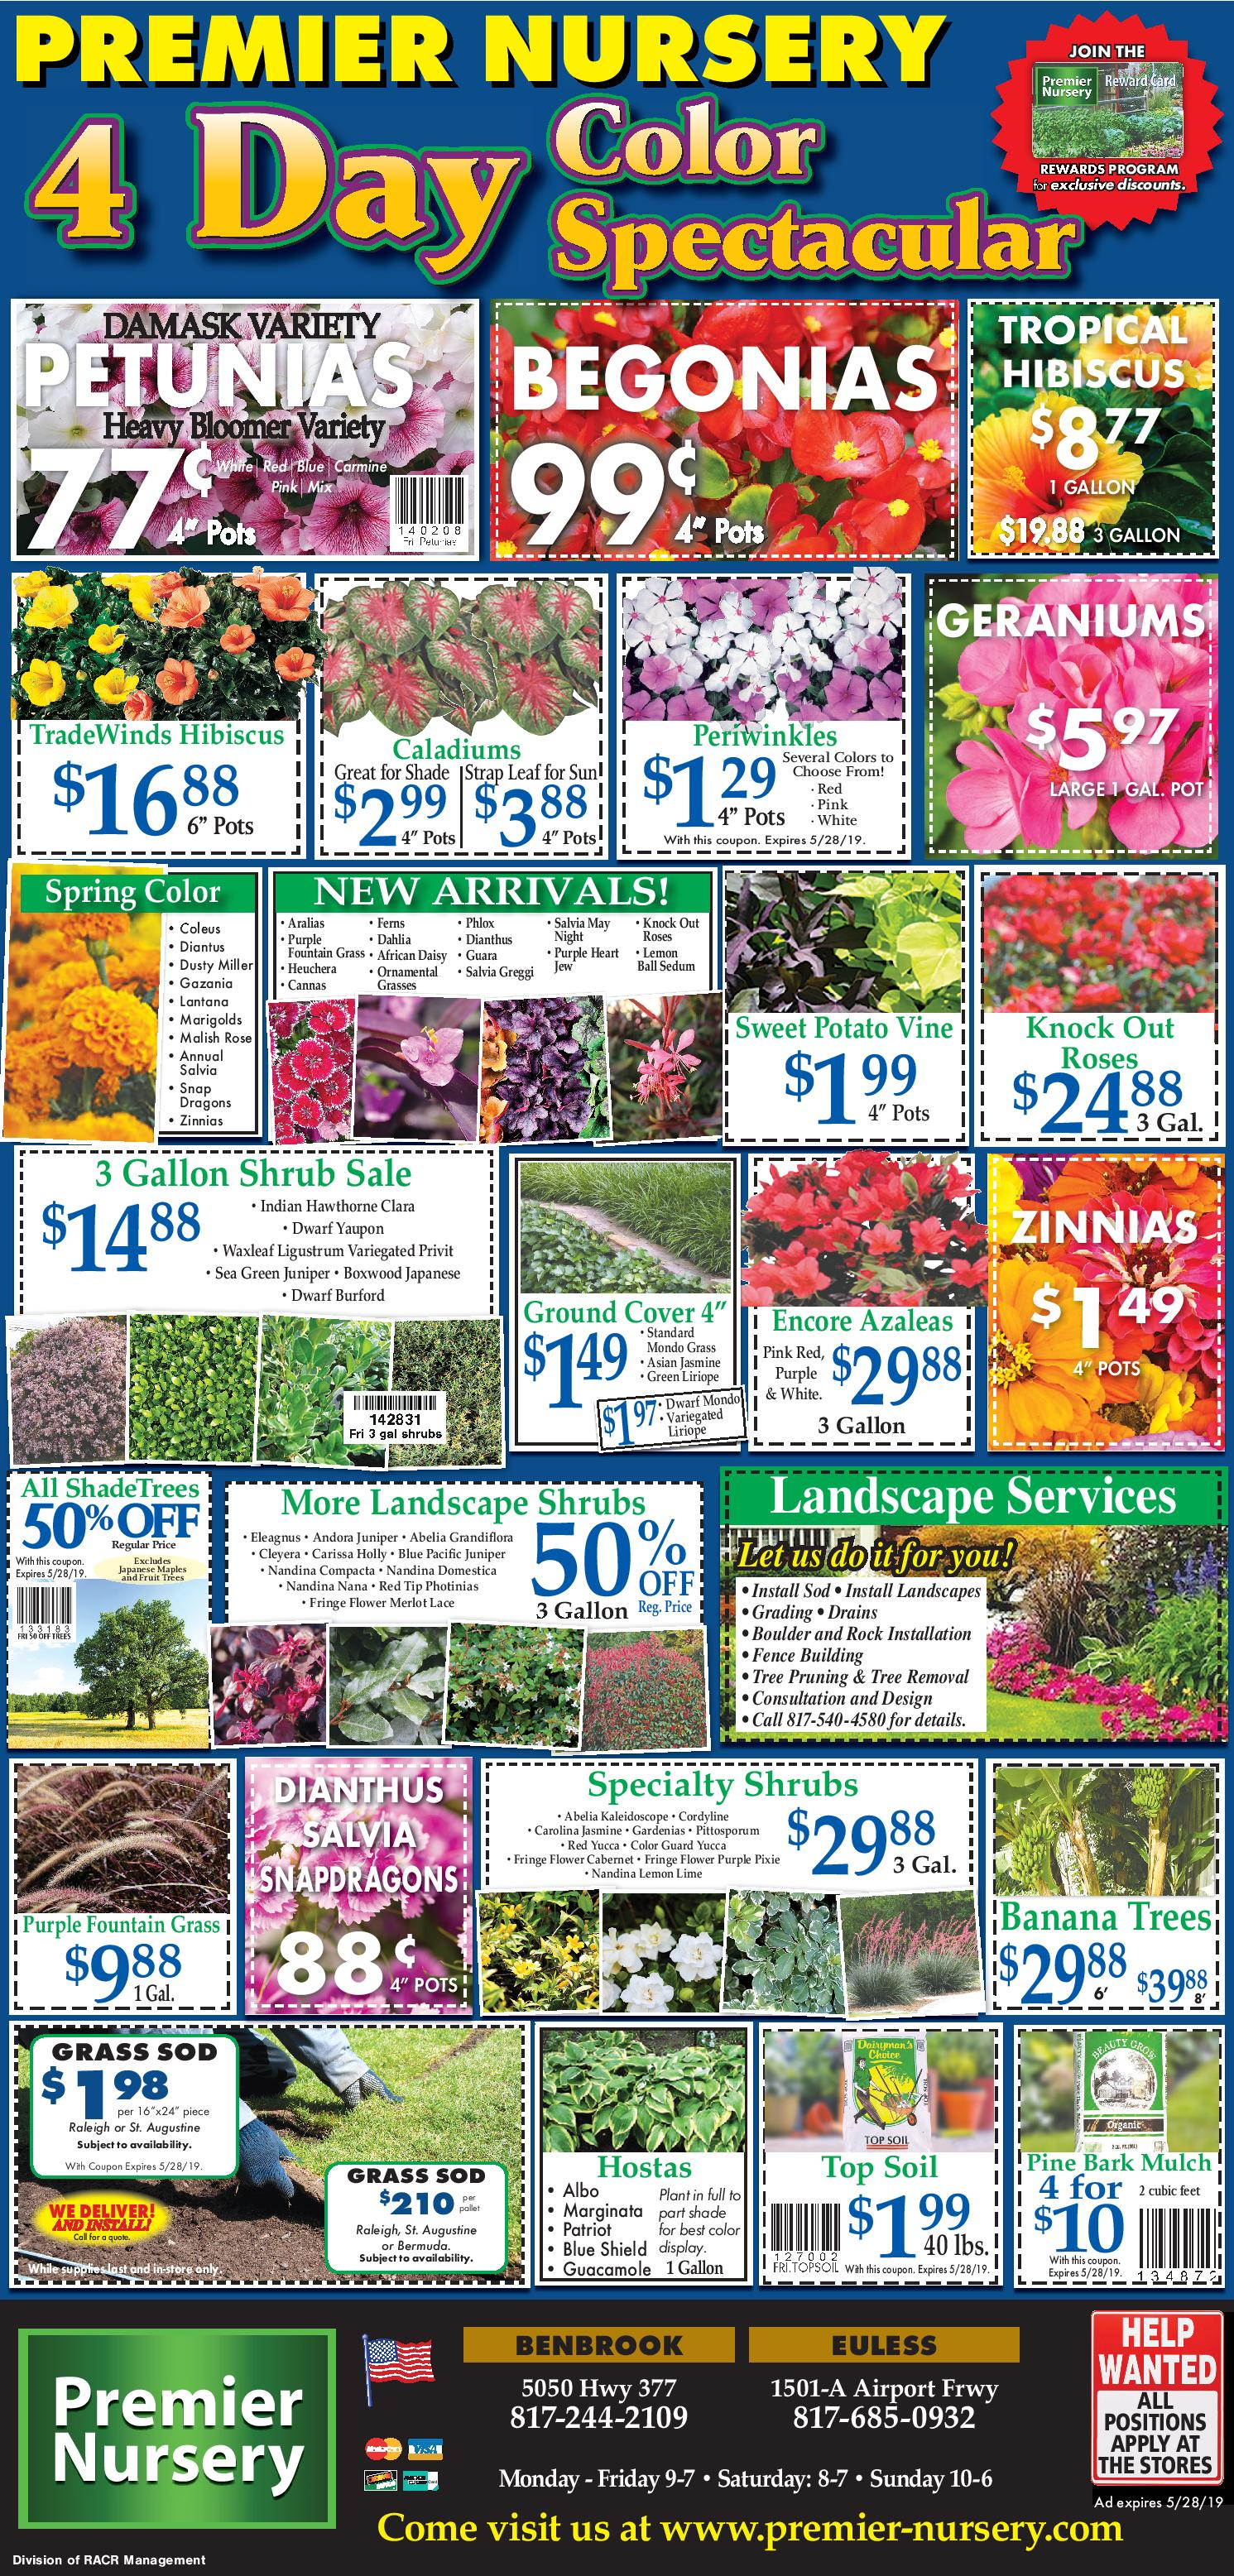 Premier Nursery Weekly Coupons